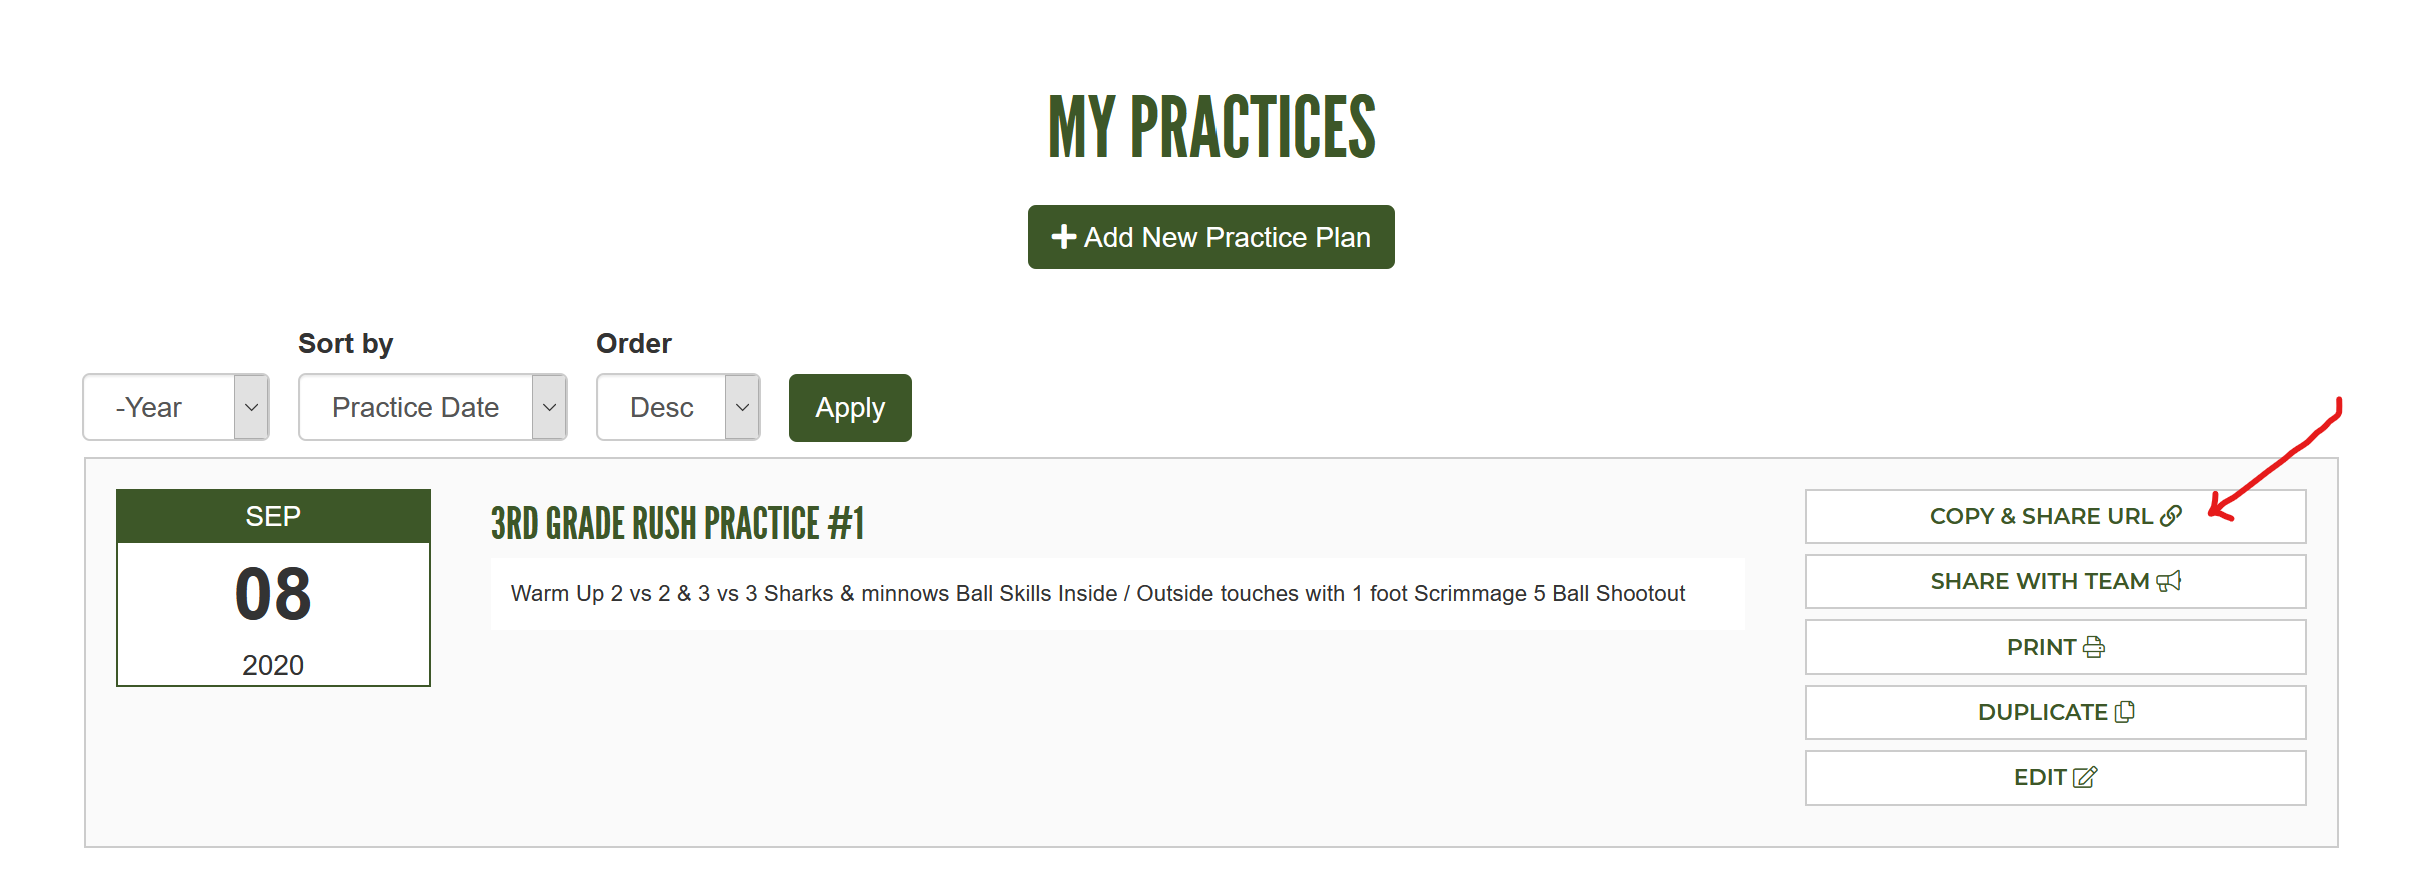 Copy and Share URL Button on my practices page